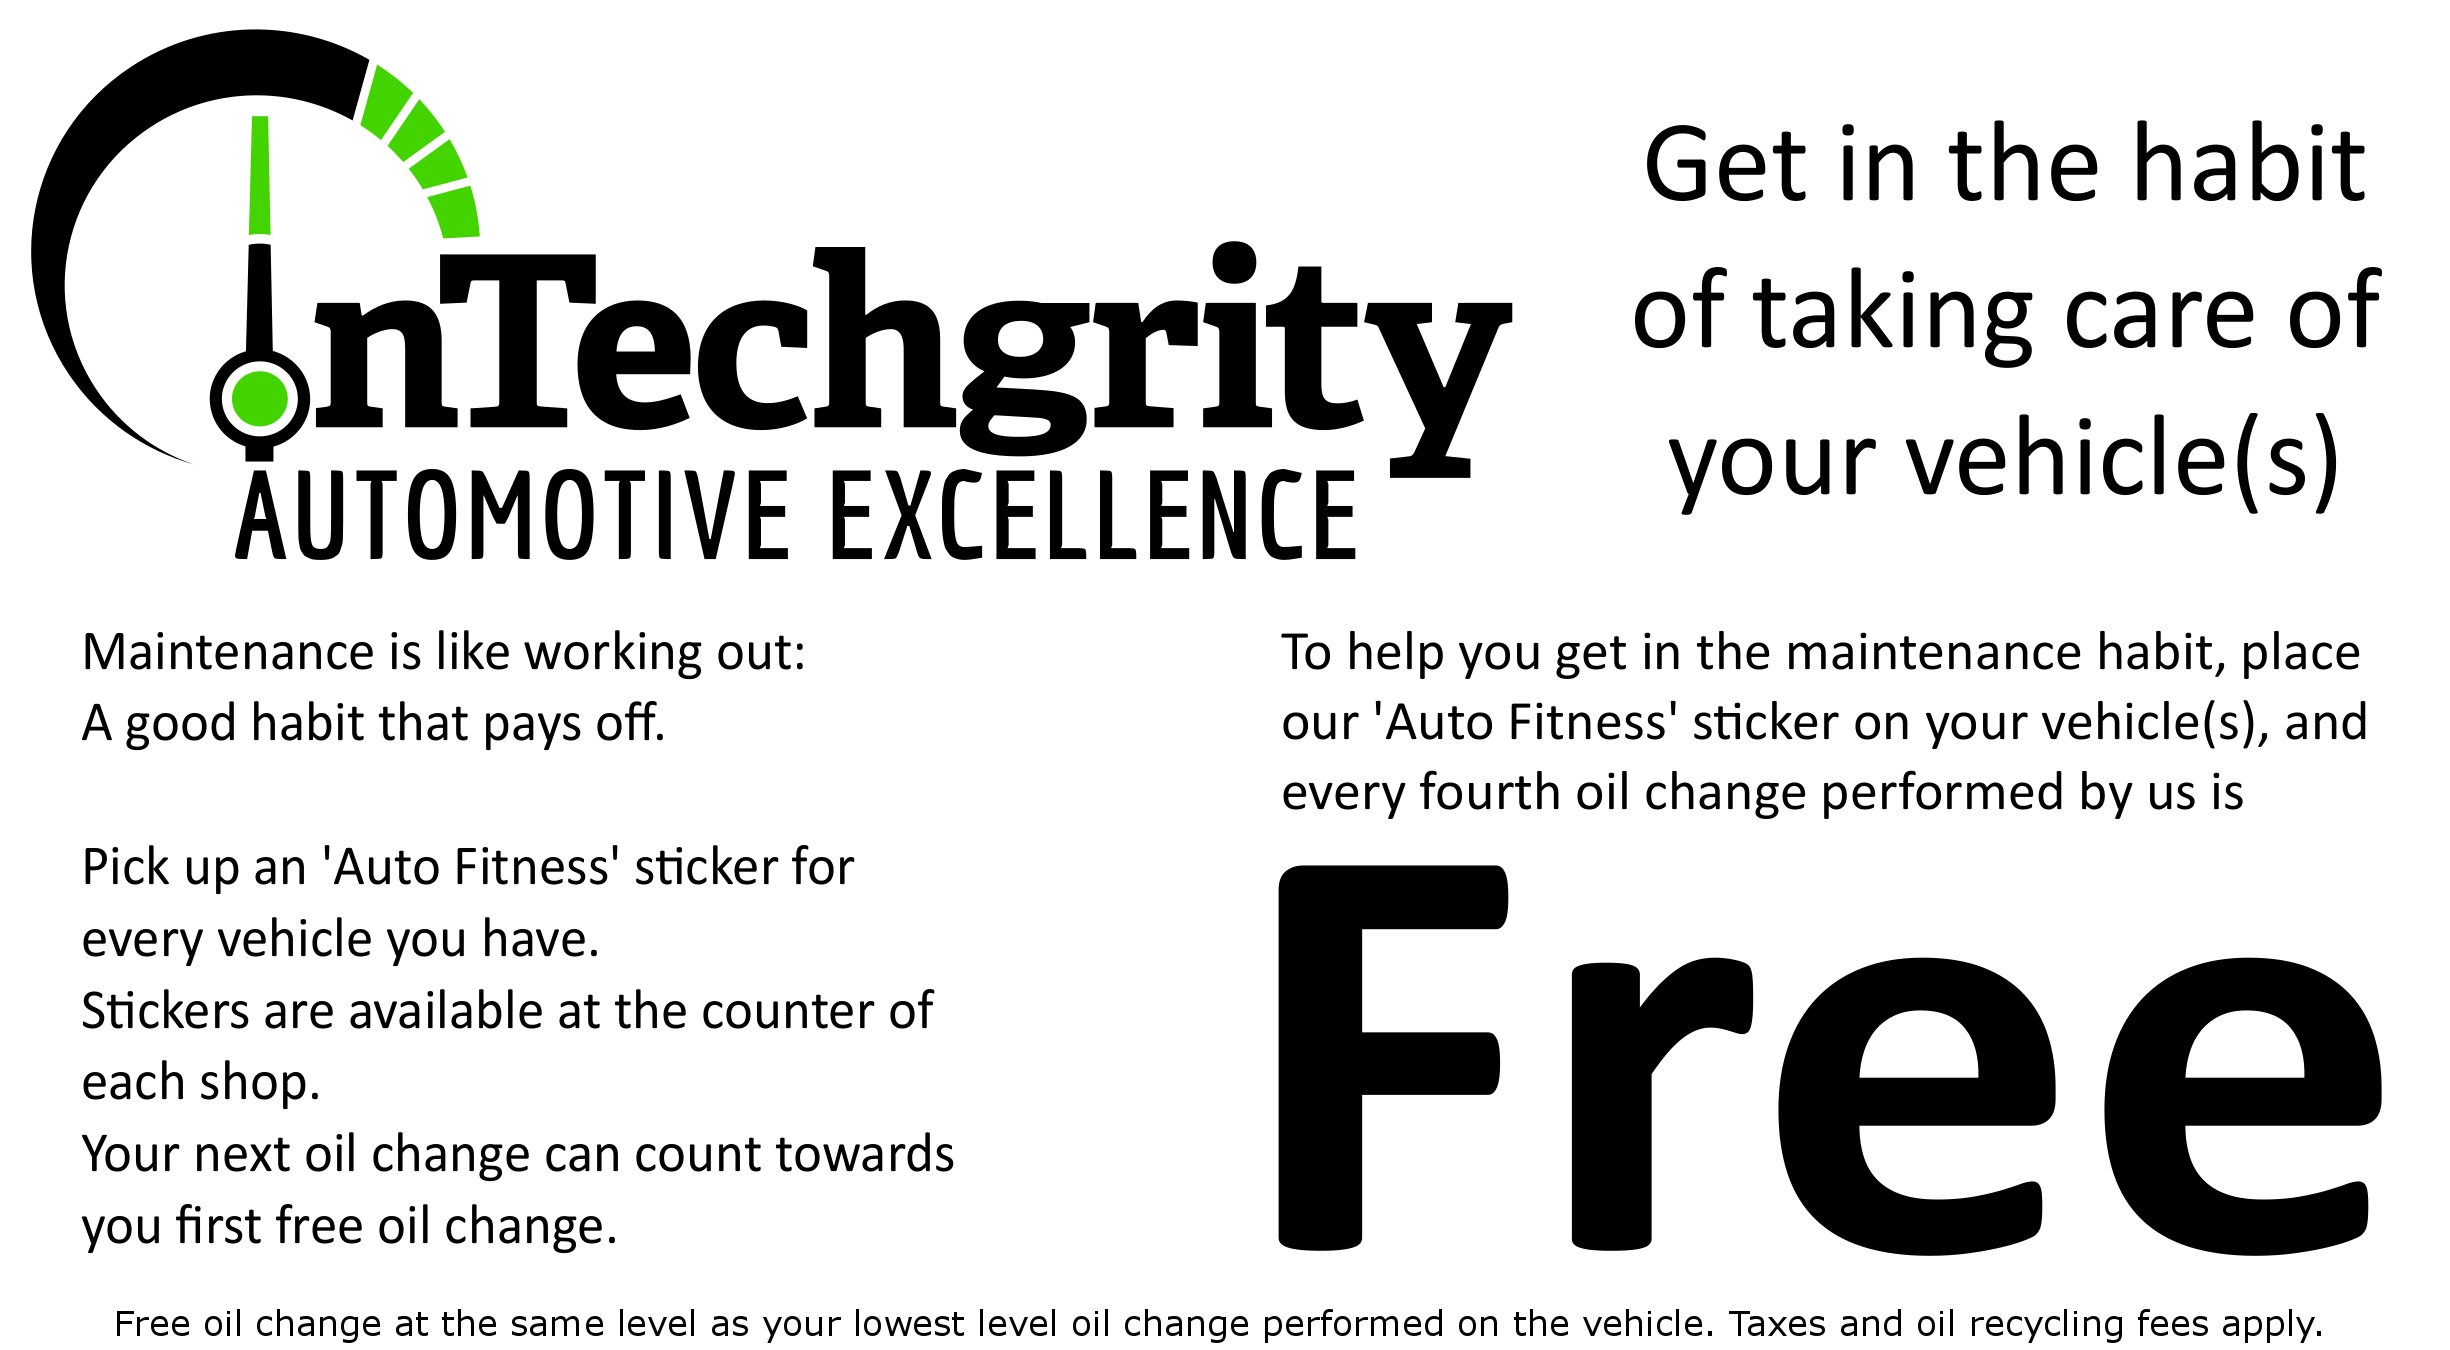 Auto Fitness: Every fourth oil change is FREE